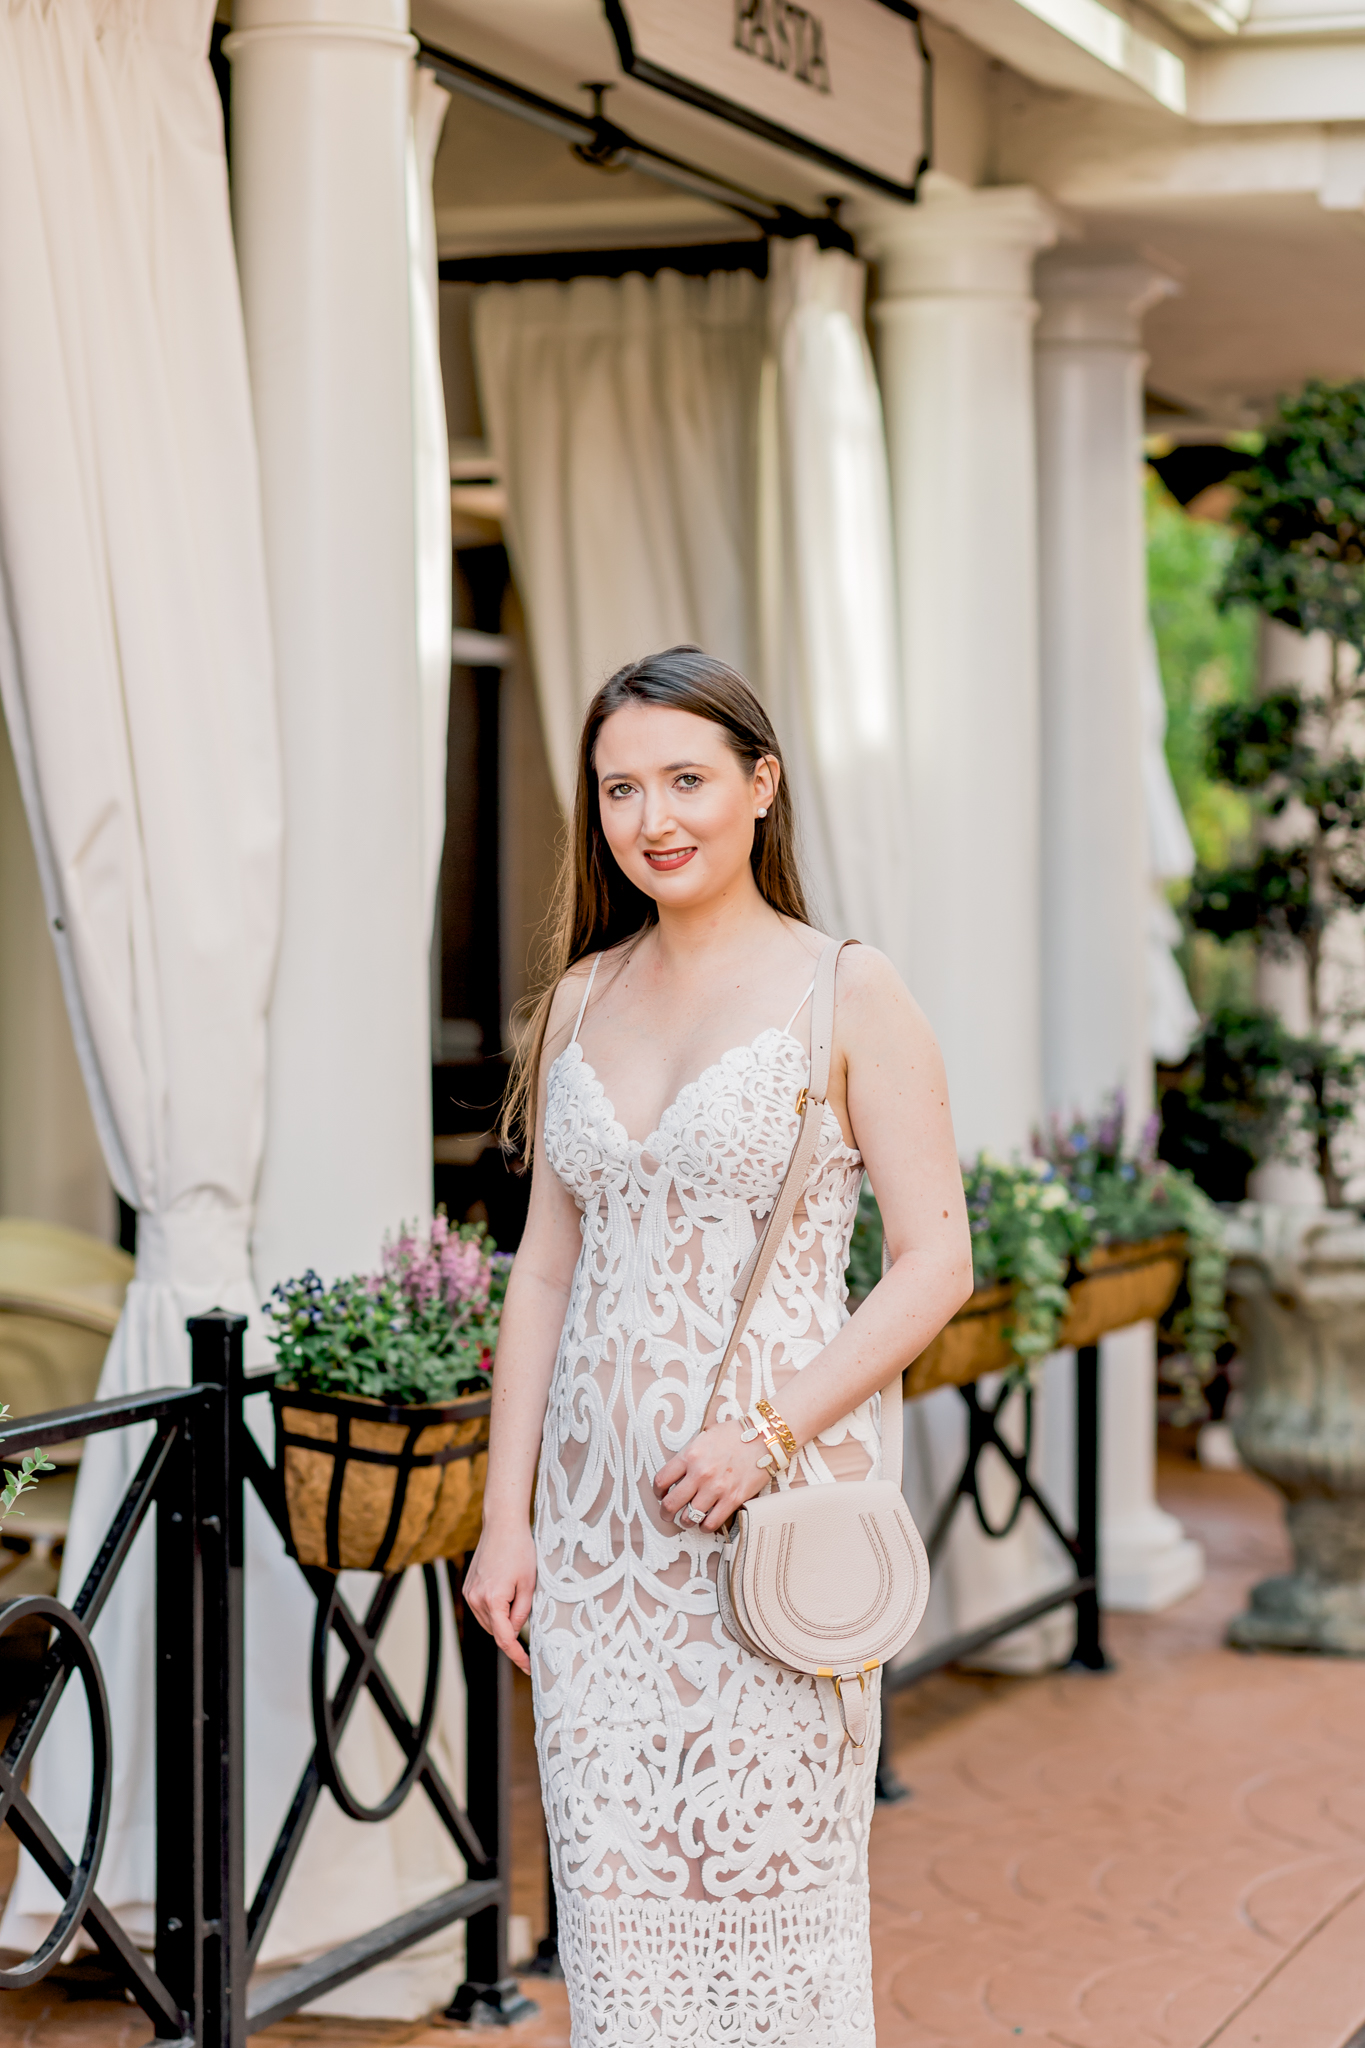 The perfect bachelorette dress: White lace & Red bottoms